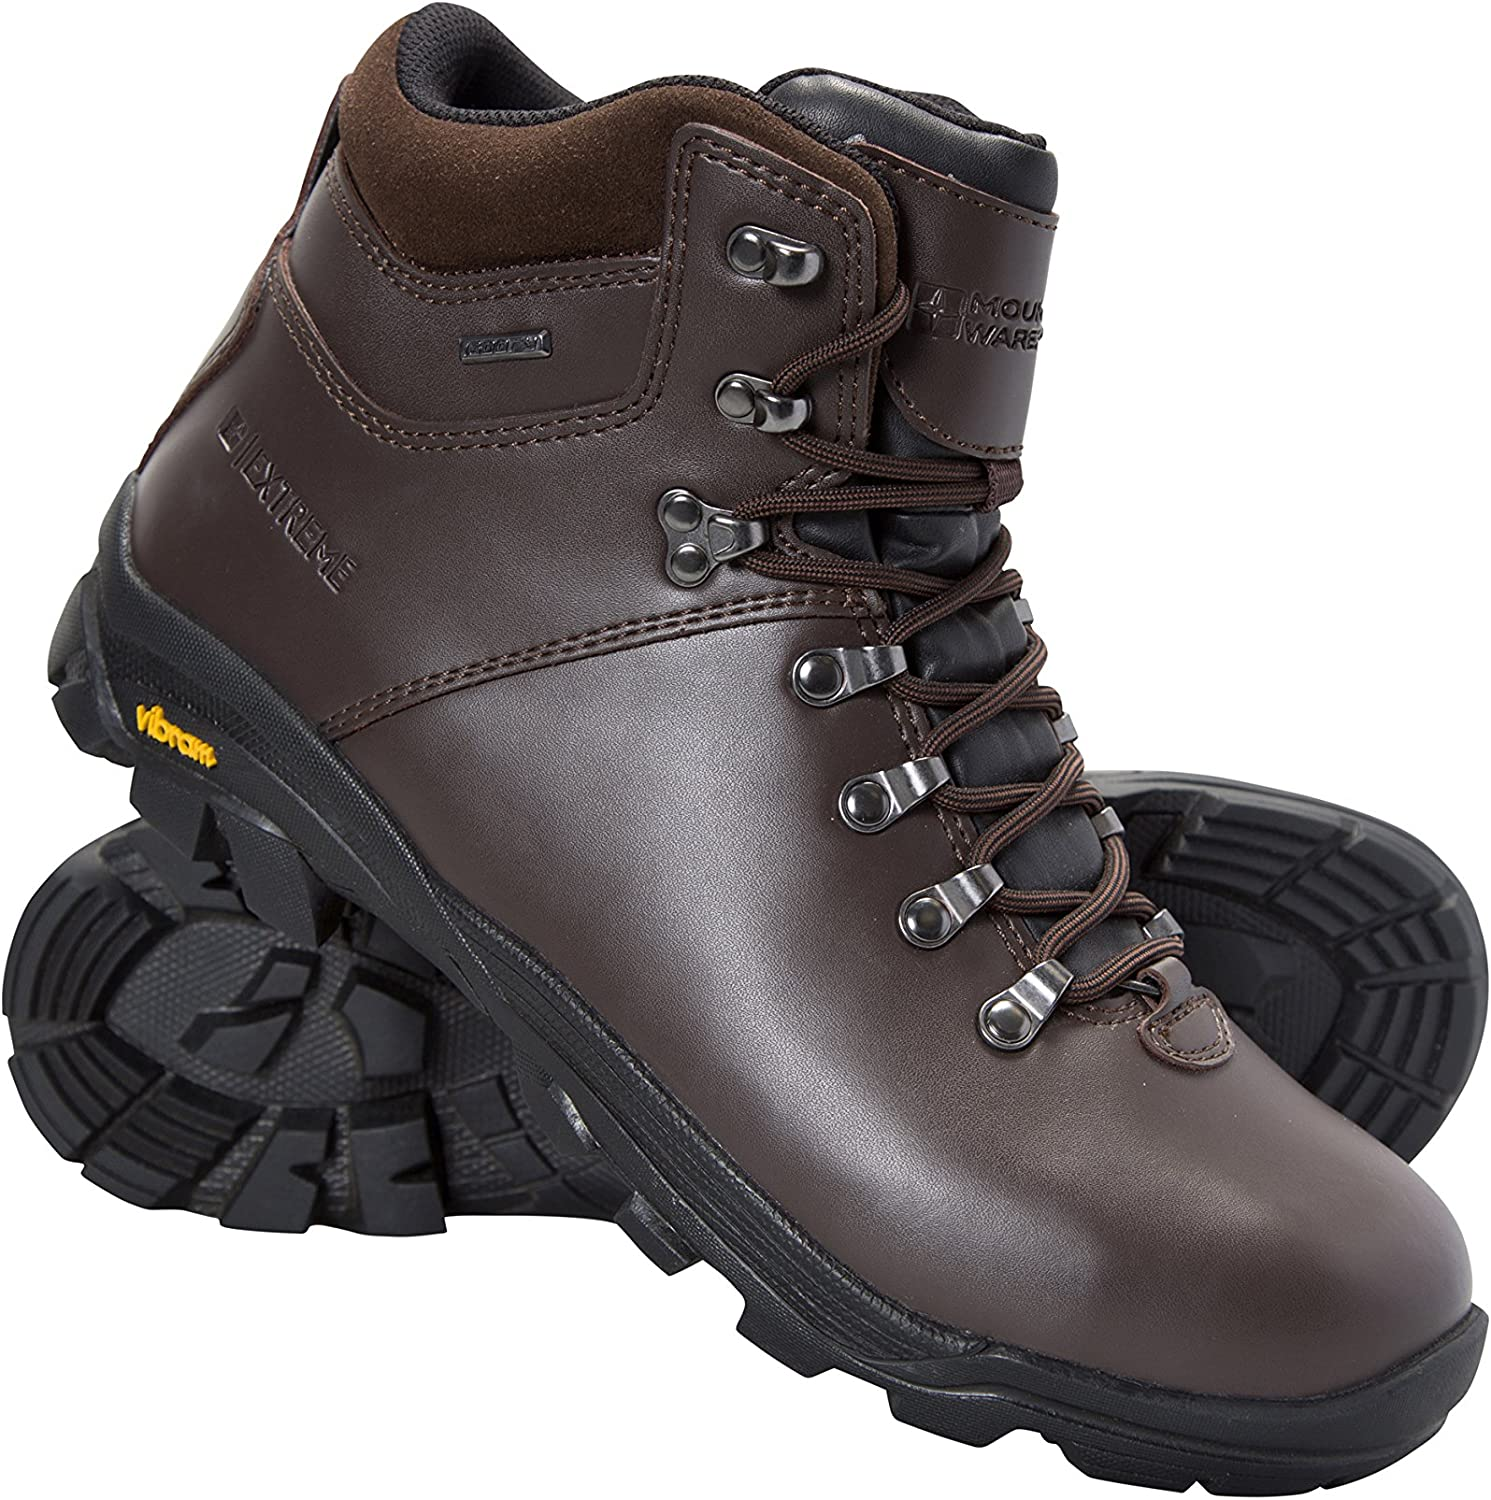 Mountain Warehouse Brecon Mens Waterproof Vibram Boots - Breathable, Quick Drying, Leather Upper, Antibacterial Outsoles & EVA Cushioned Footbed - for Hiking & Trekking